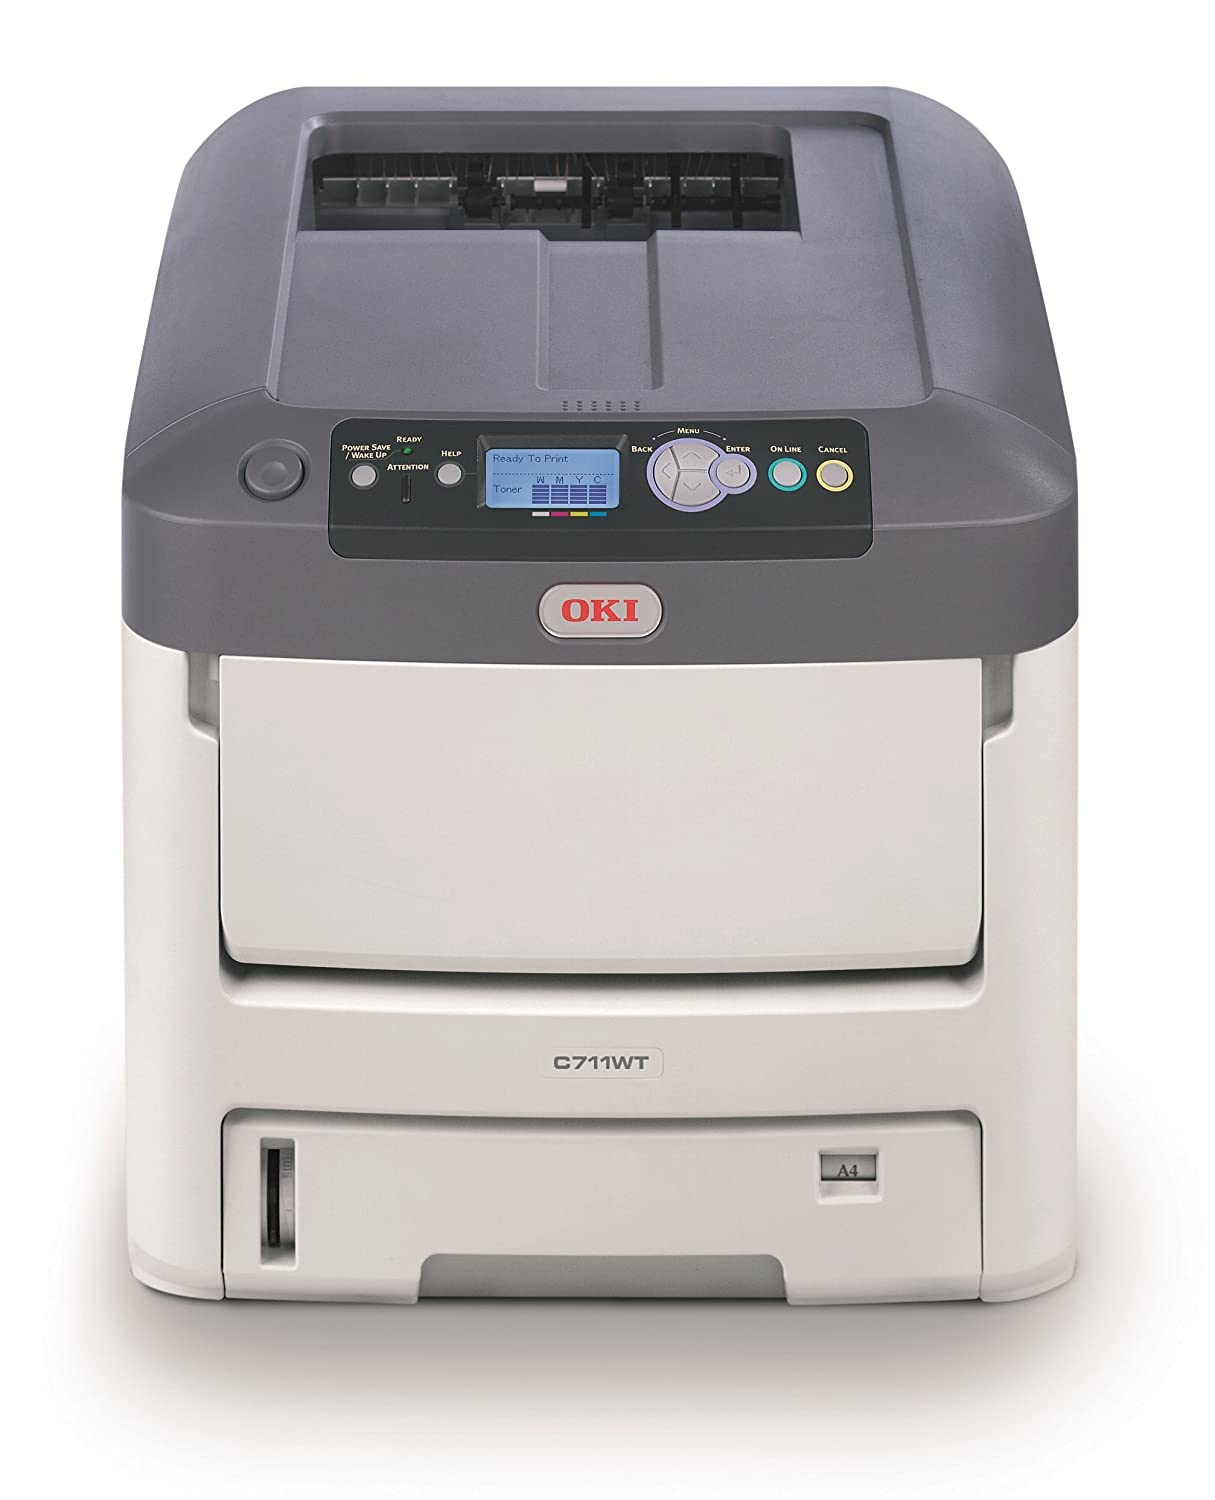 TOP 10 Best Printers For Heat Transfers - Reviews in 2019 8